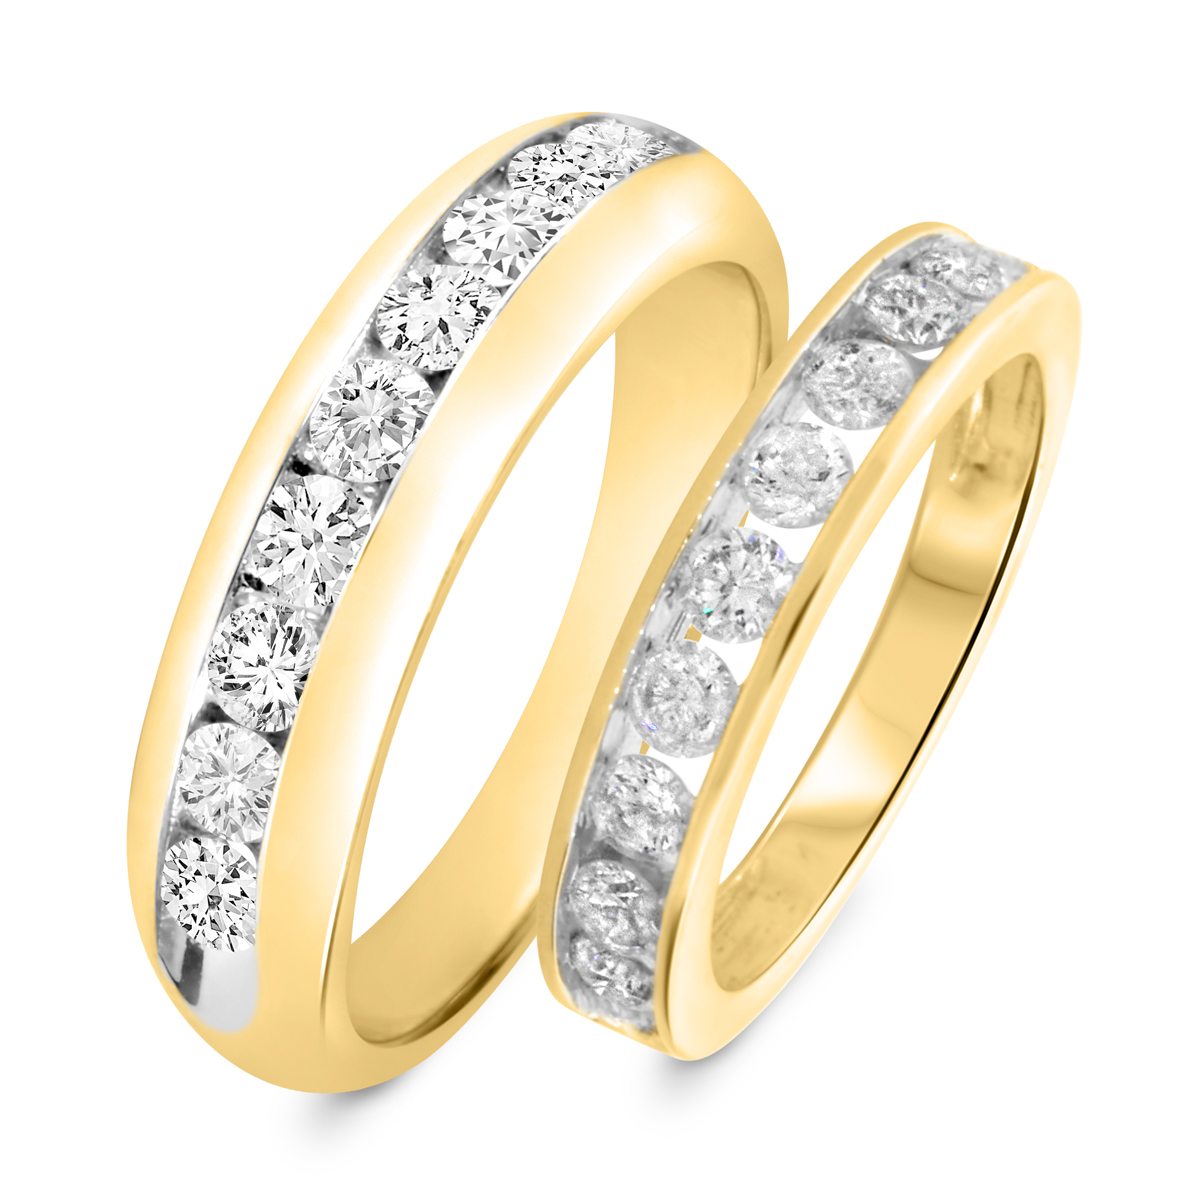 1 7/8 Carat T.W. Round Cut Diamond His and Hers Wedding Band Set 10K Yellow Gold